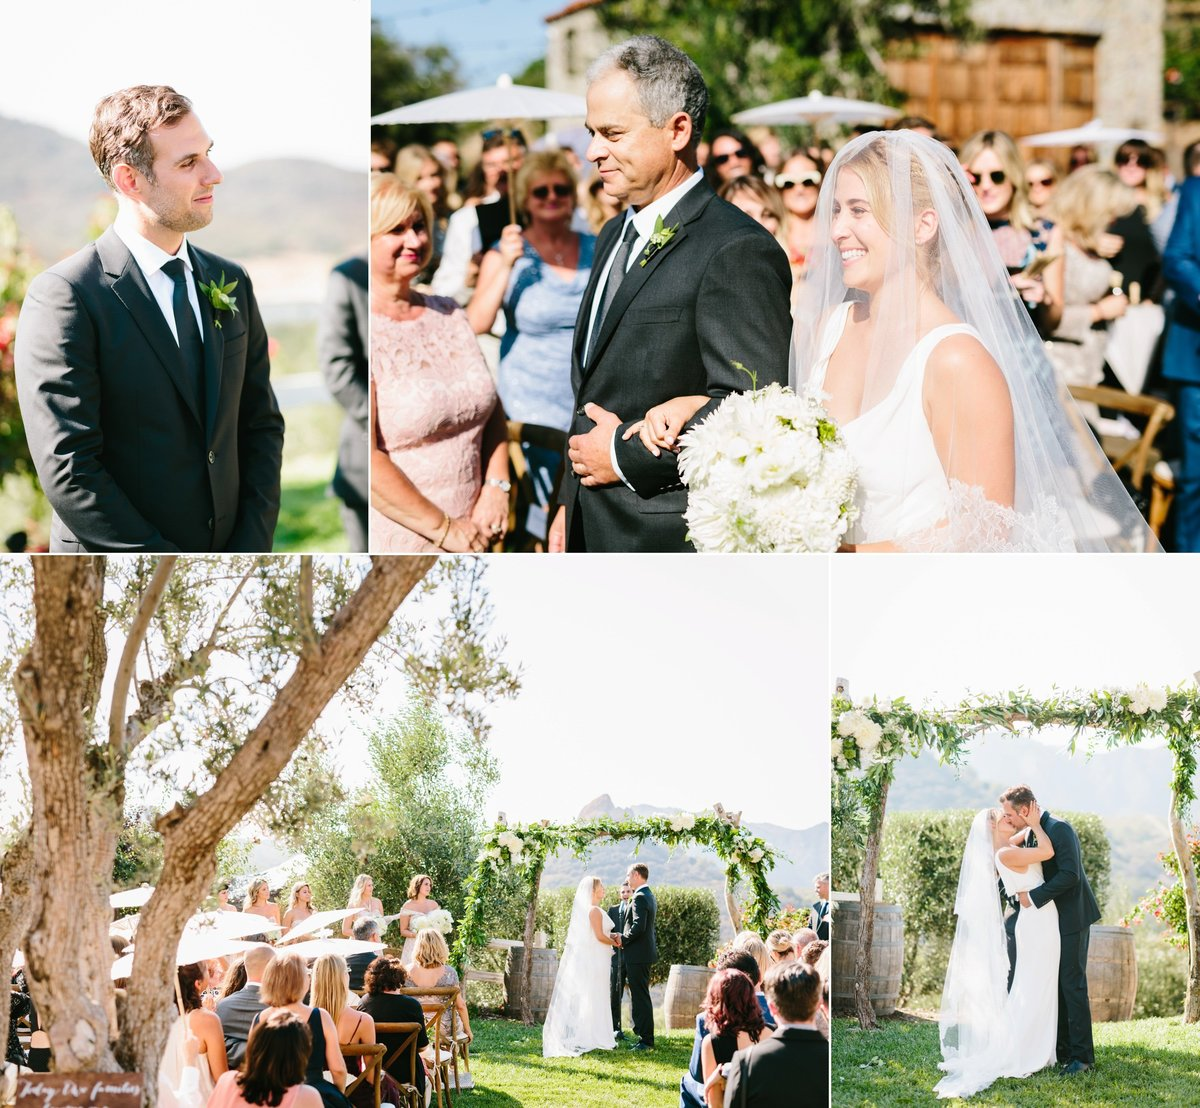 Best California Wedding Photographer-Jodee Debes Photography-261